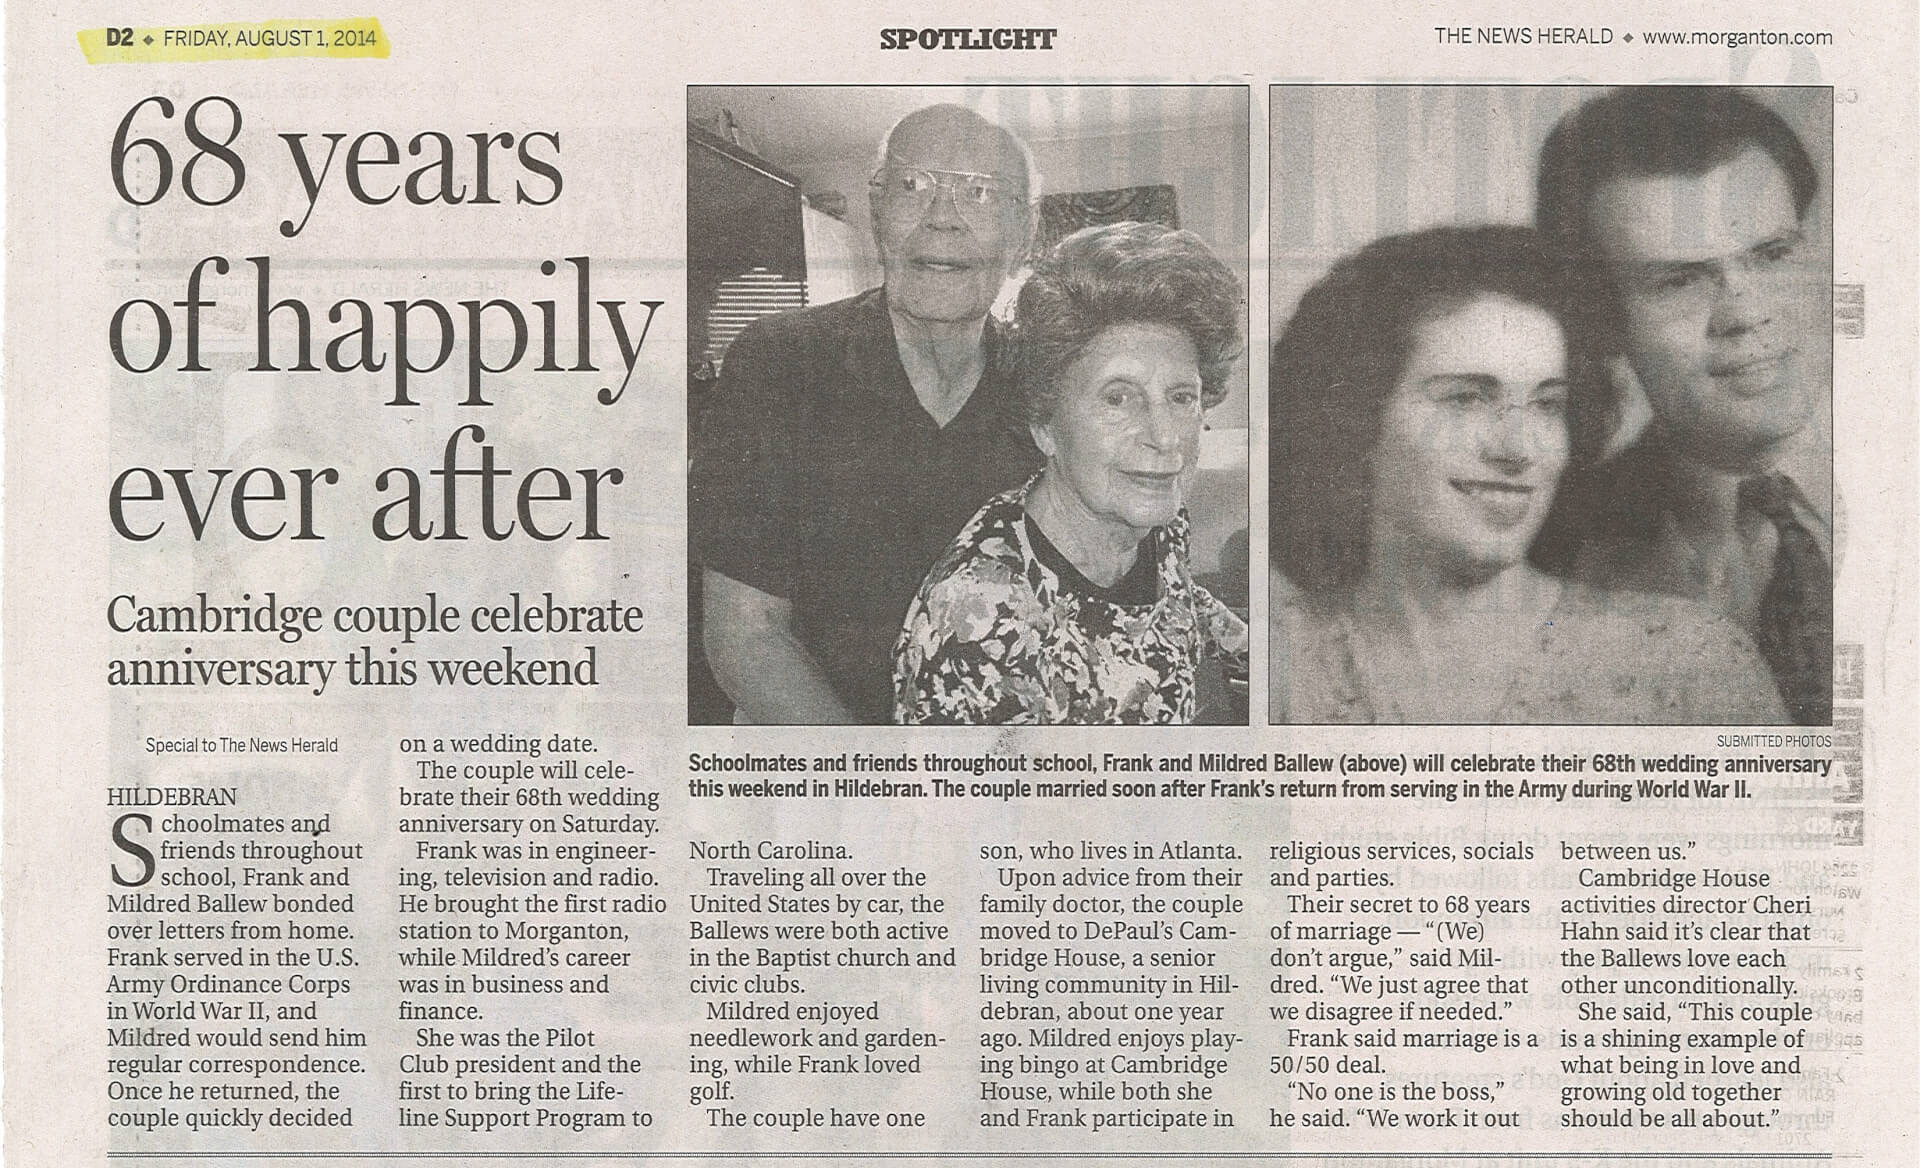 Cambridge House Senior Living Celebrates Frank and Mildred Ballew's 68th Anniversary, article in the News Herald August 1, 2014